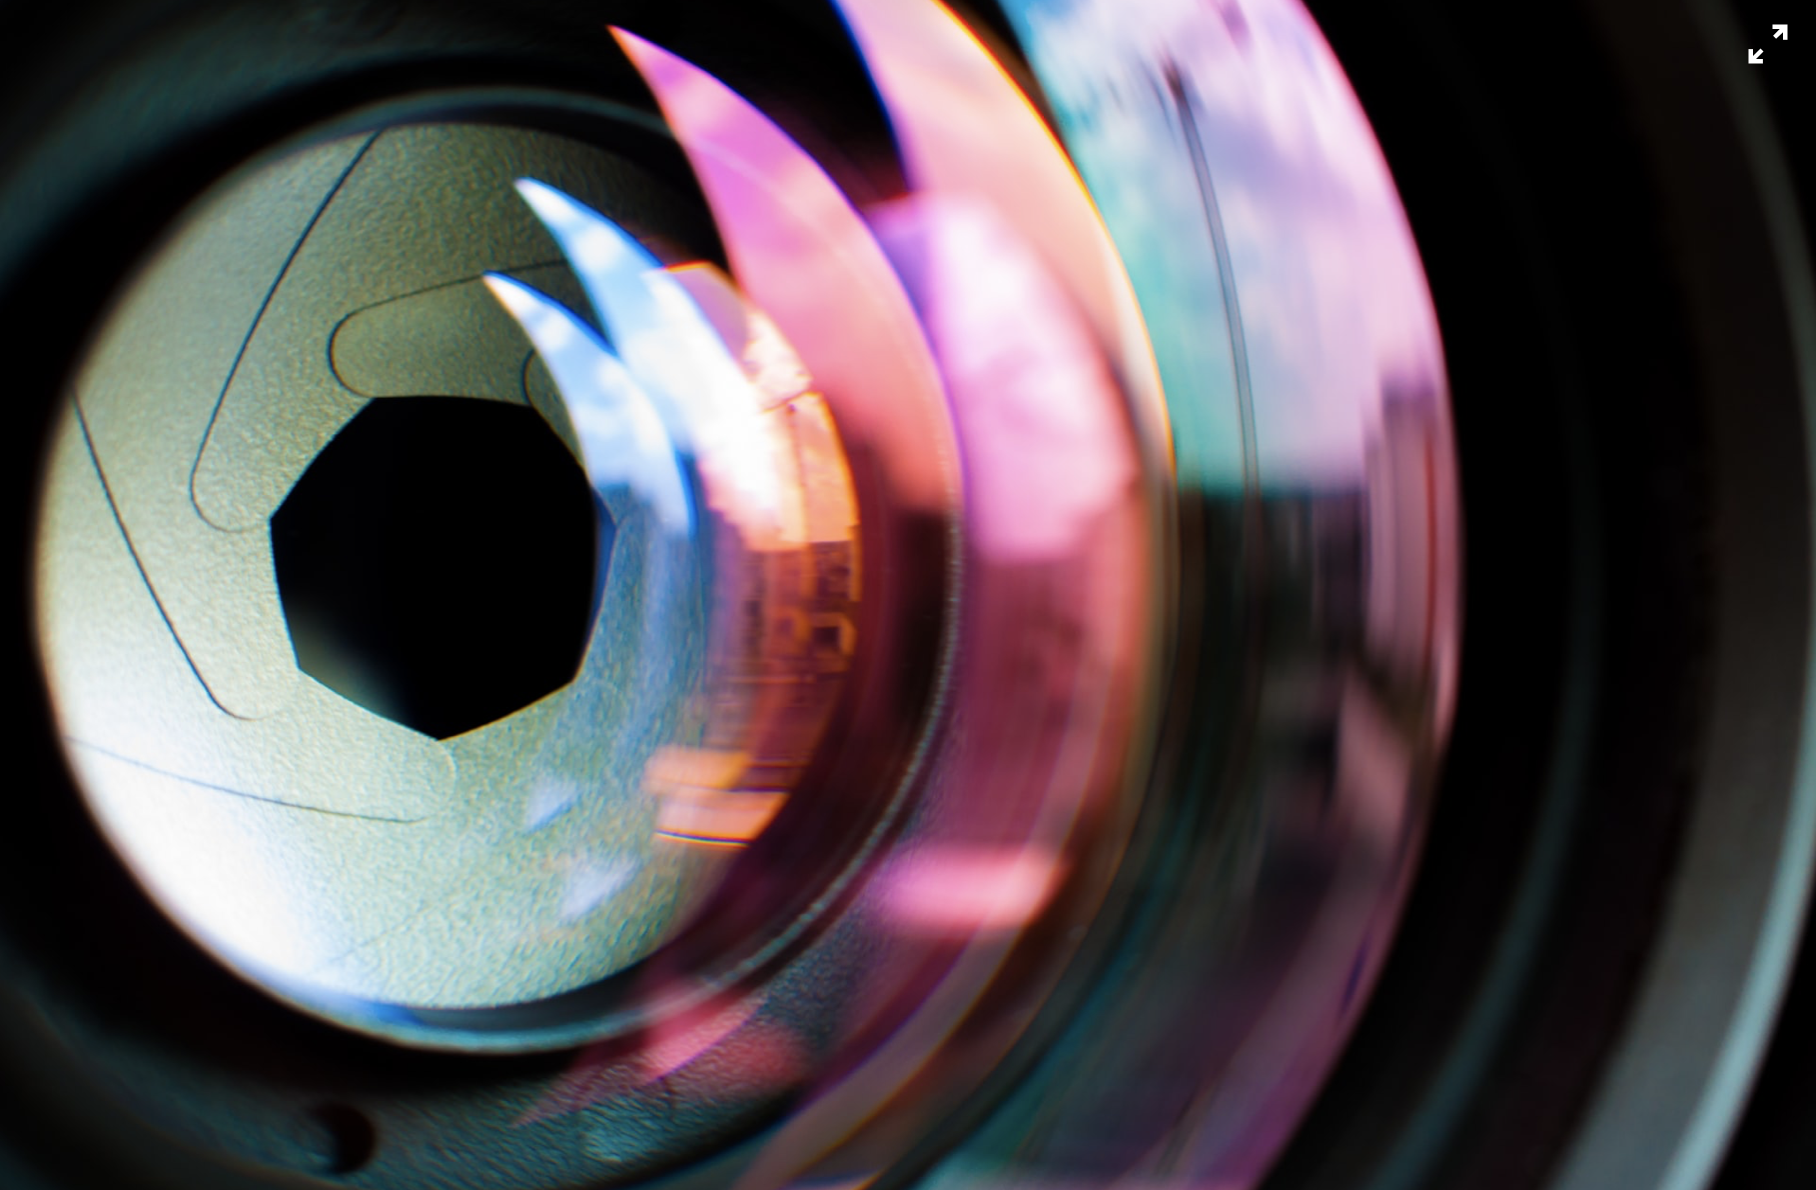 Close-up image of a camera lens